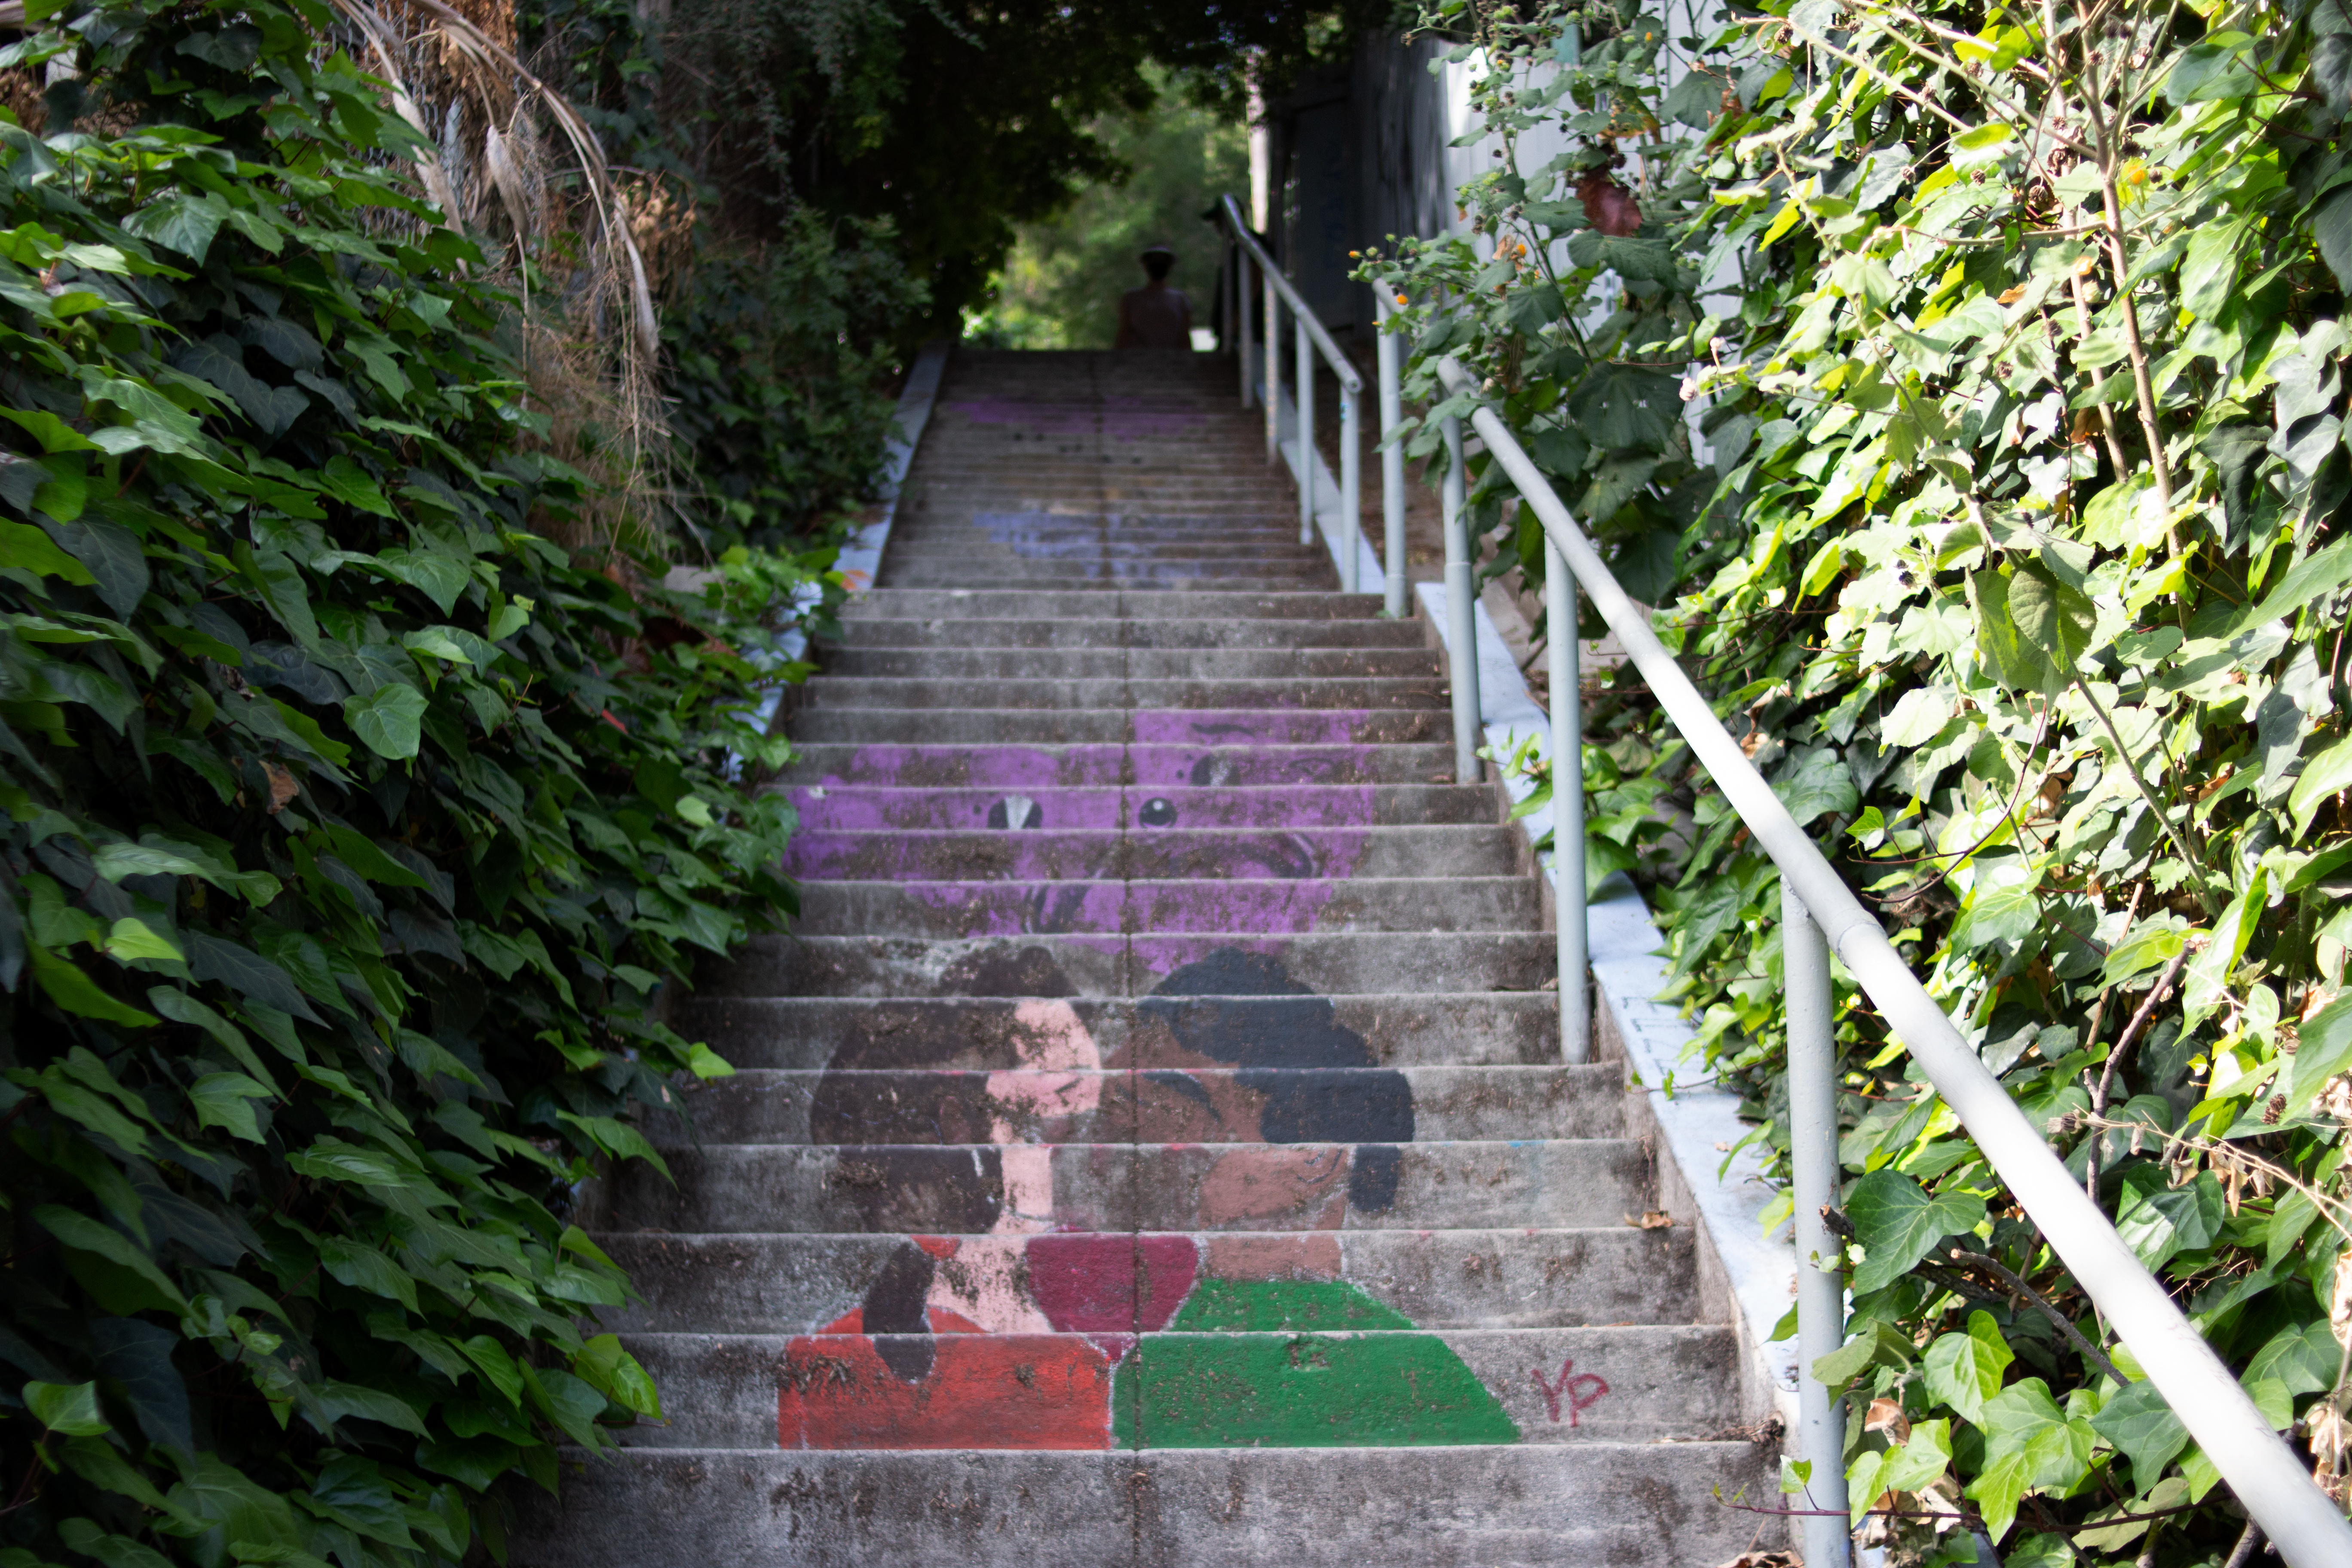 Faded painted staircase depicts couple kissing and crying hearts.